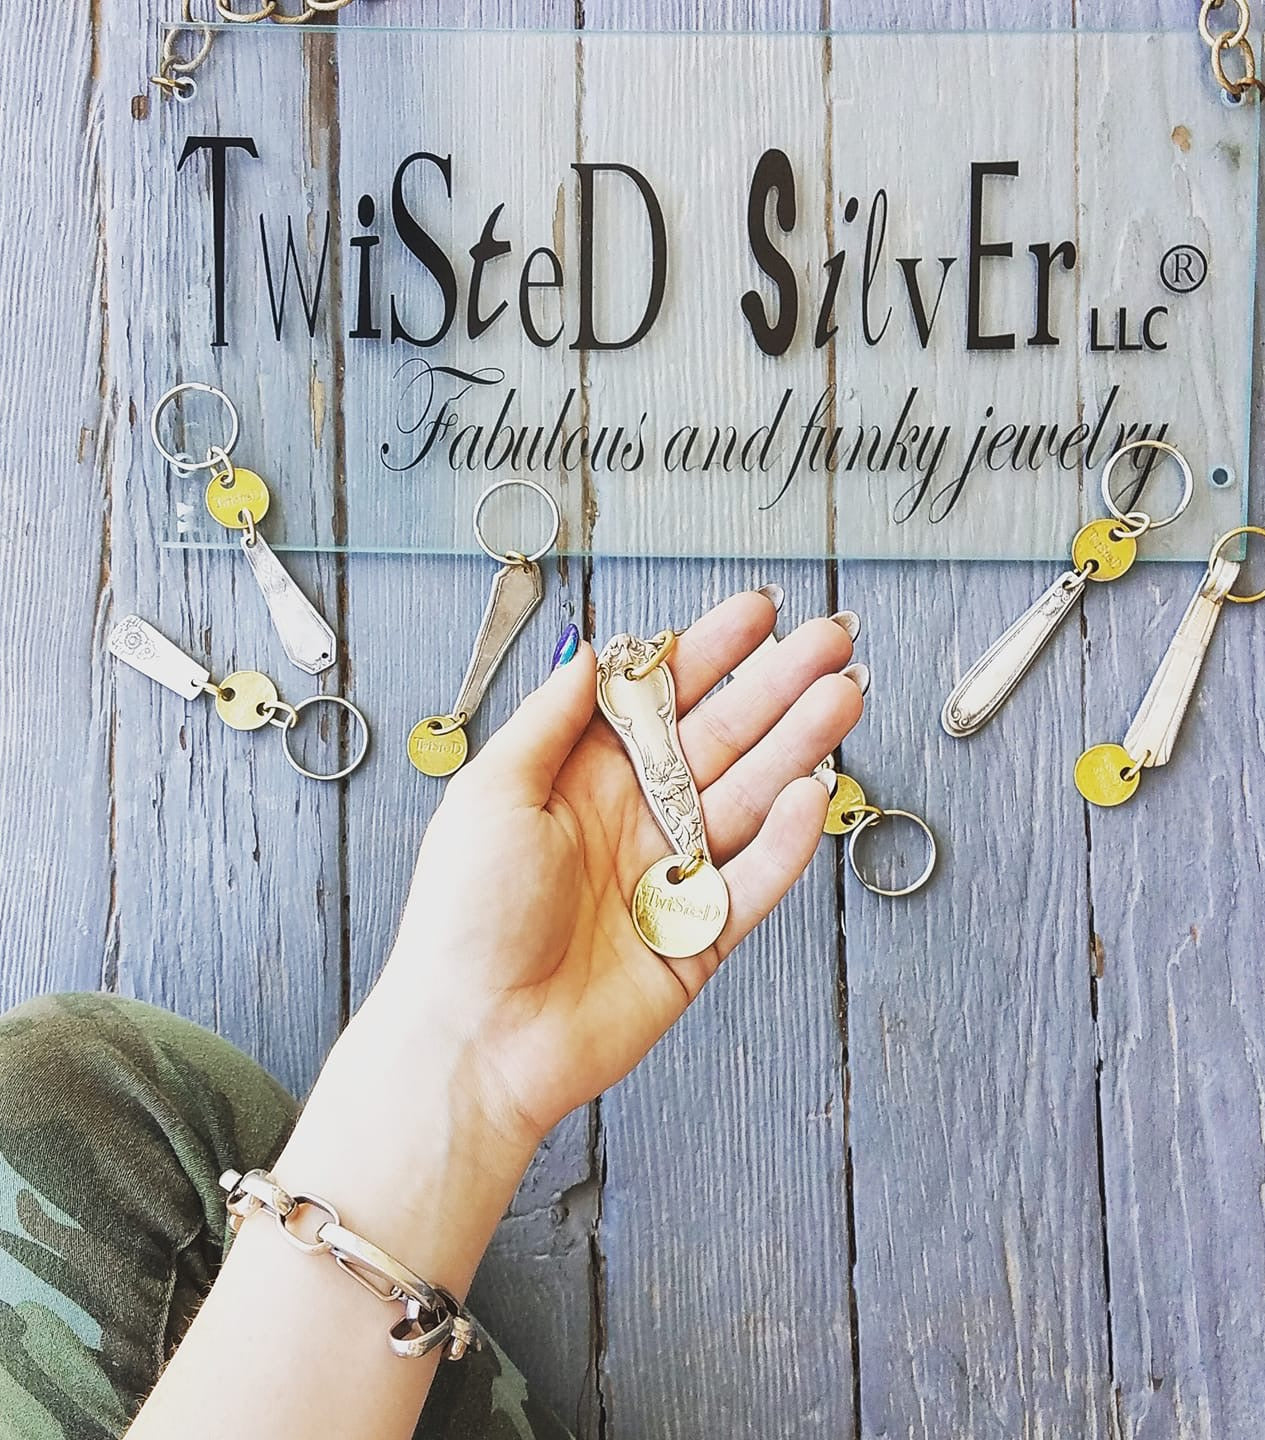 TWISTED Keychain - Twisted Silver Jewelry